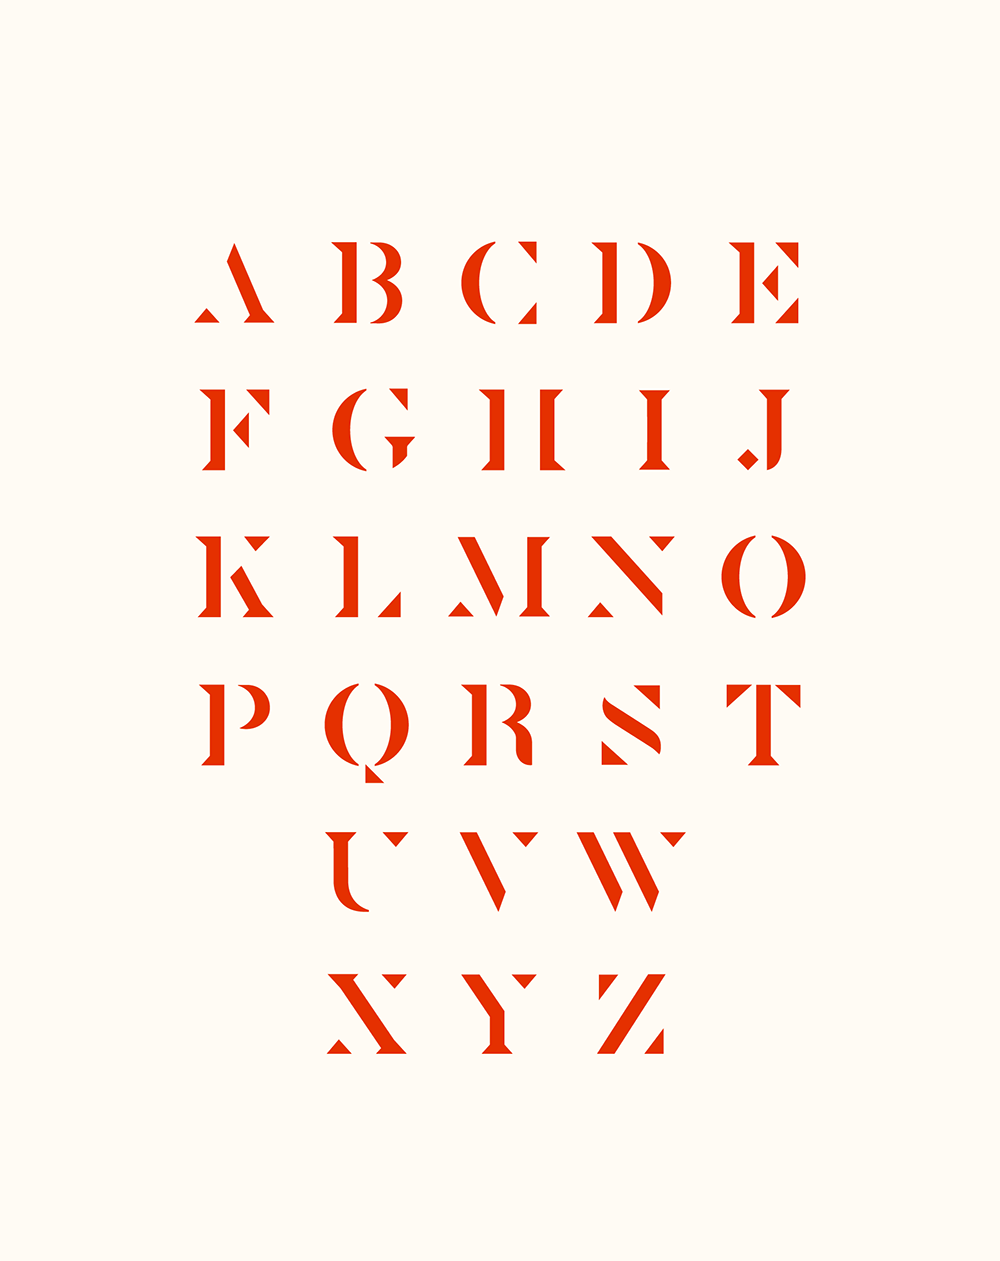 Leoa Typeface - The Leoa serif typeface, based on the logo, was developed and customized for the Saint Leone brand.